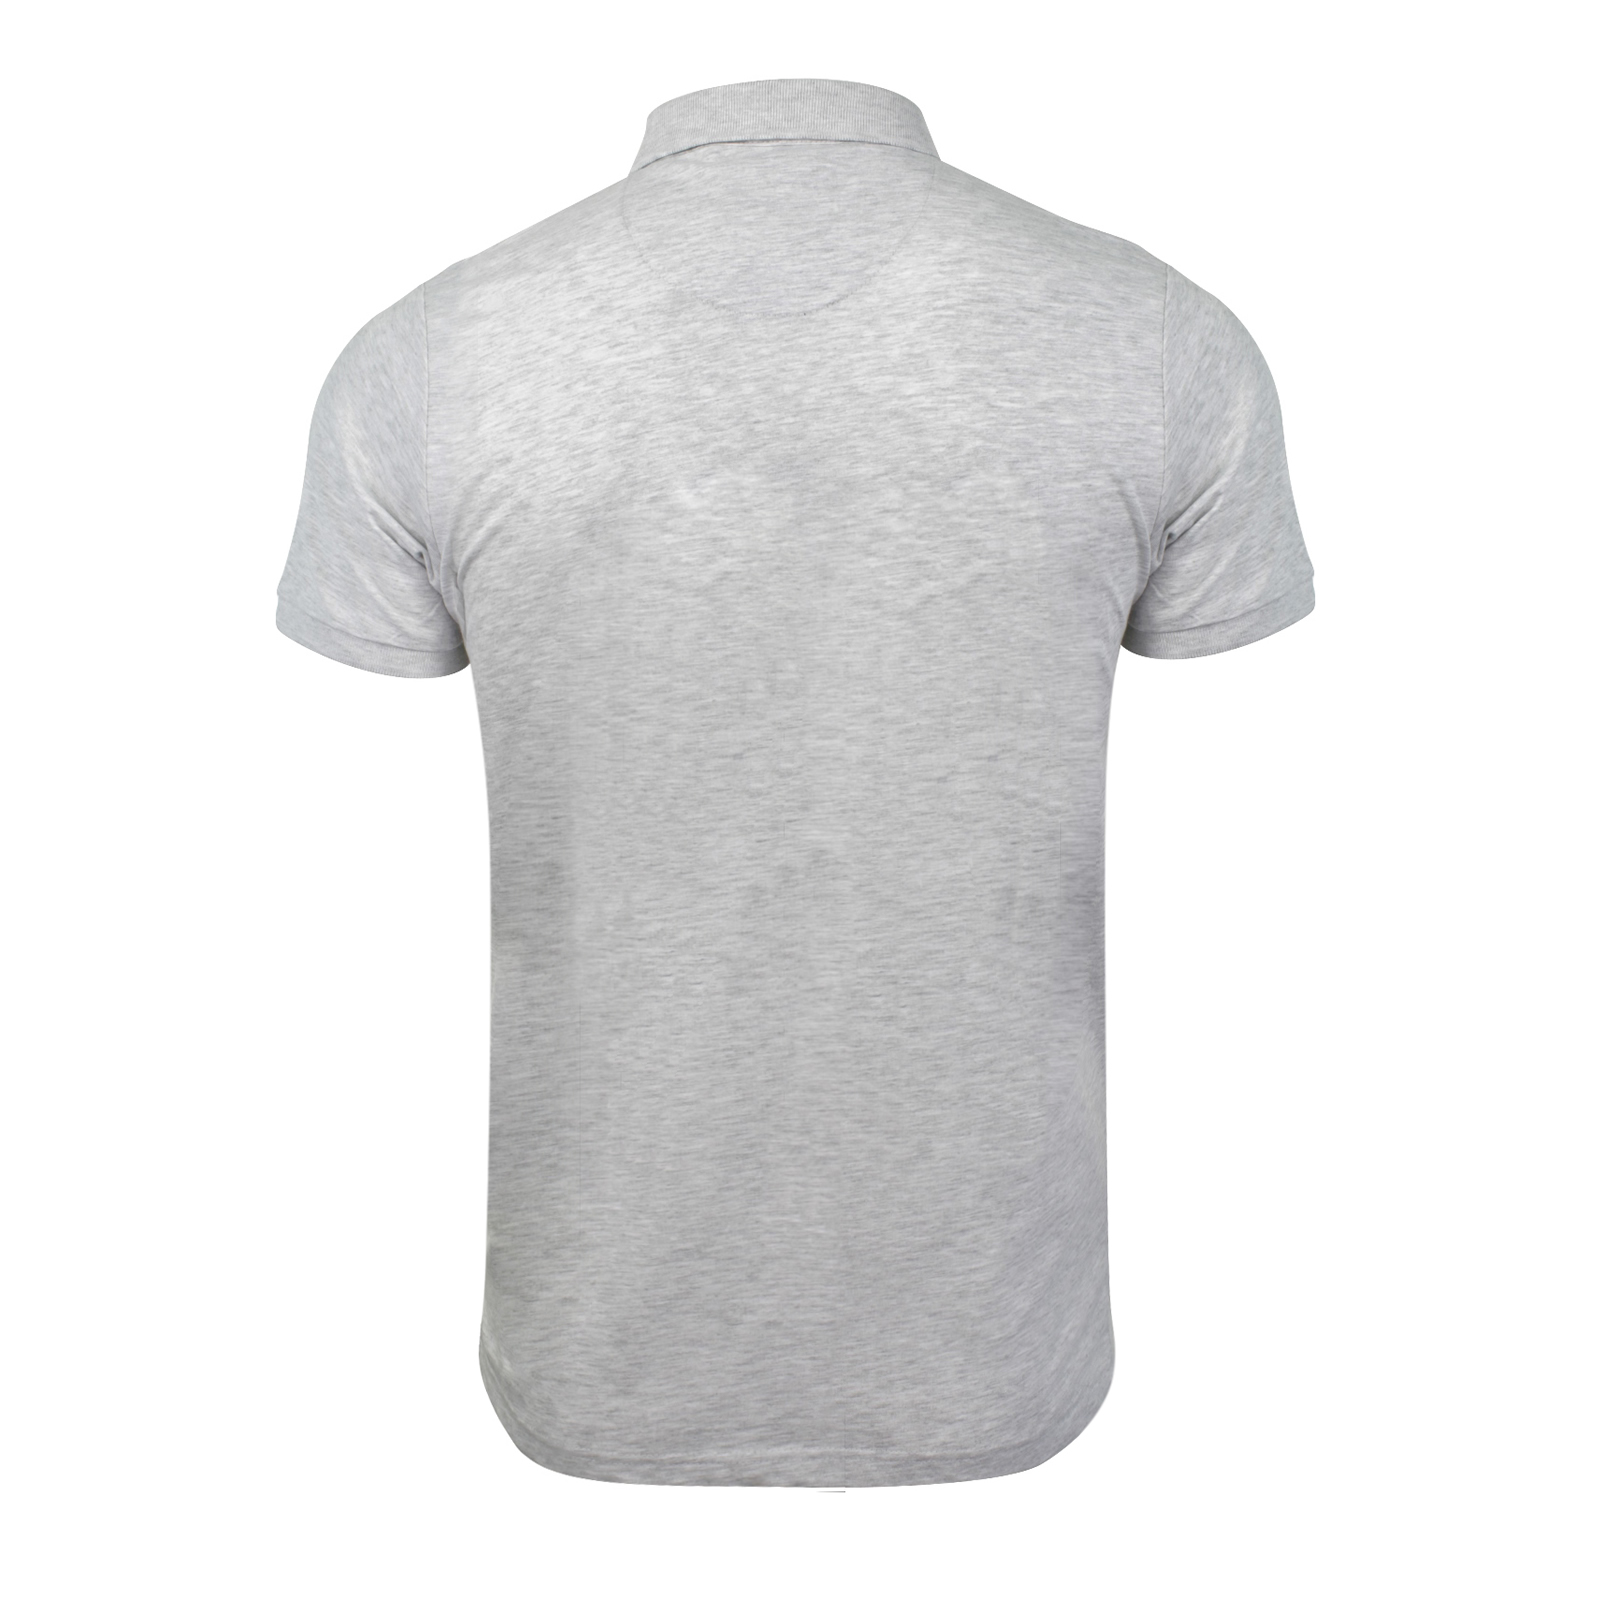 Mens-Polo-T-Shirt-Brave-Soul-Julius-Cotton-Collared-Short-Sleeve-Casual-Top thumbnail 9